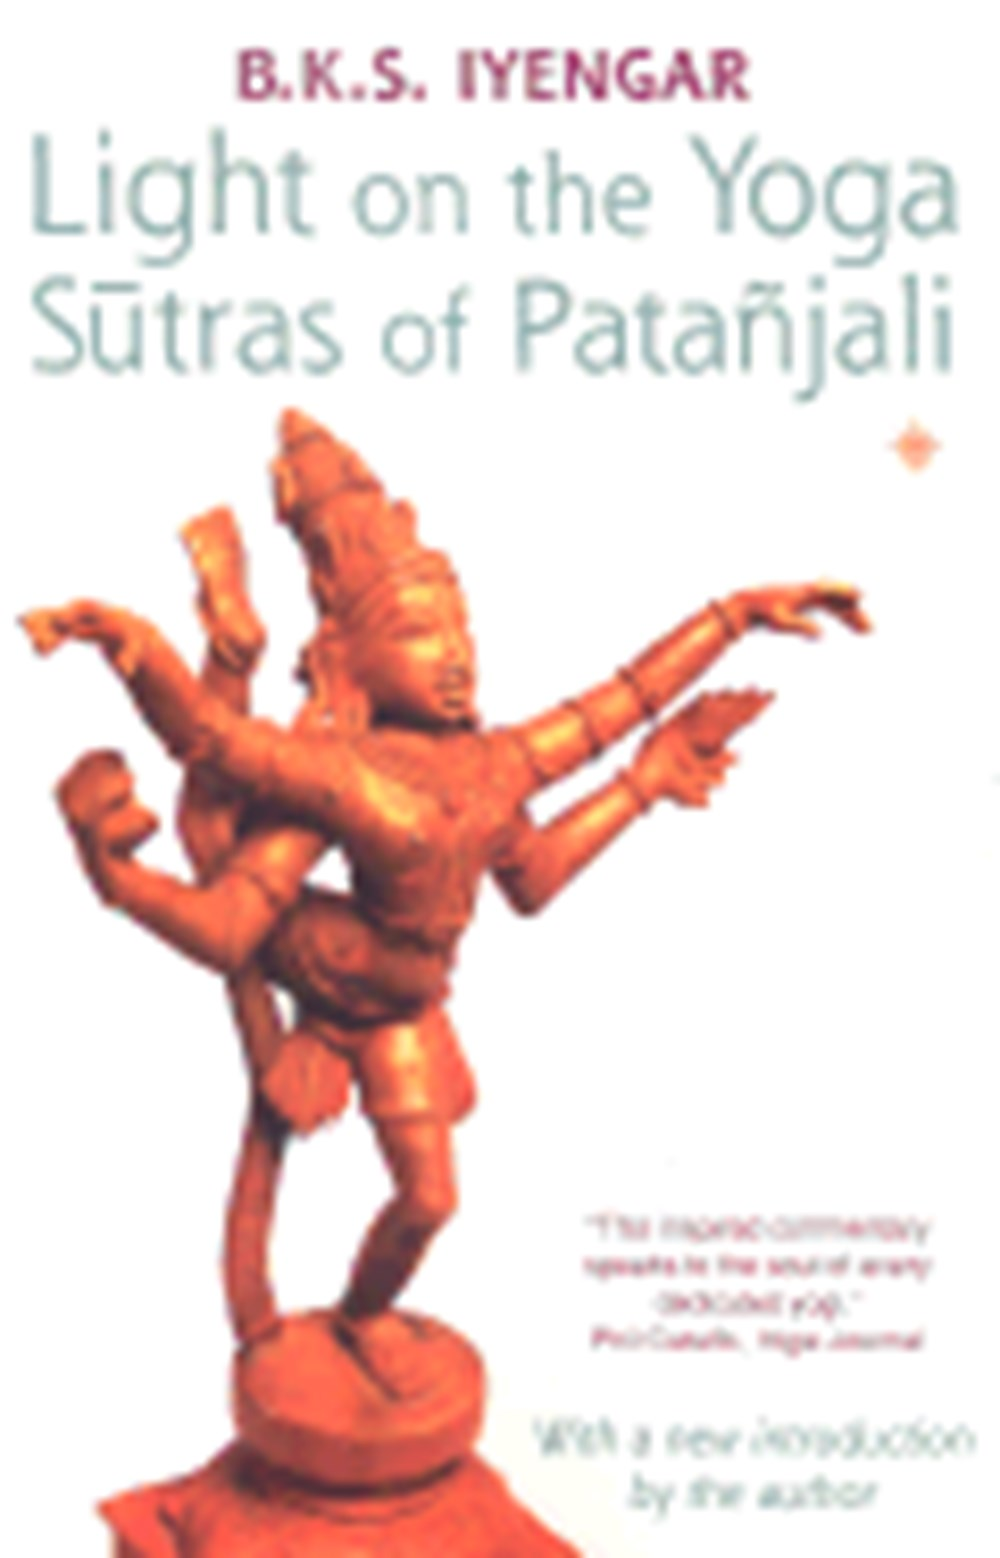 Light on the Yoga Sutras of Patanjali (Revised)